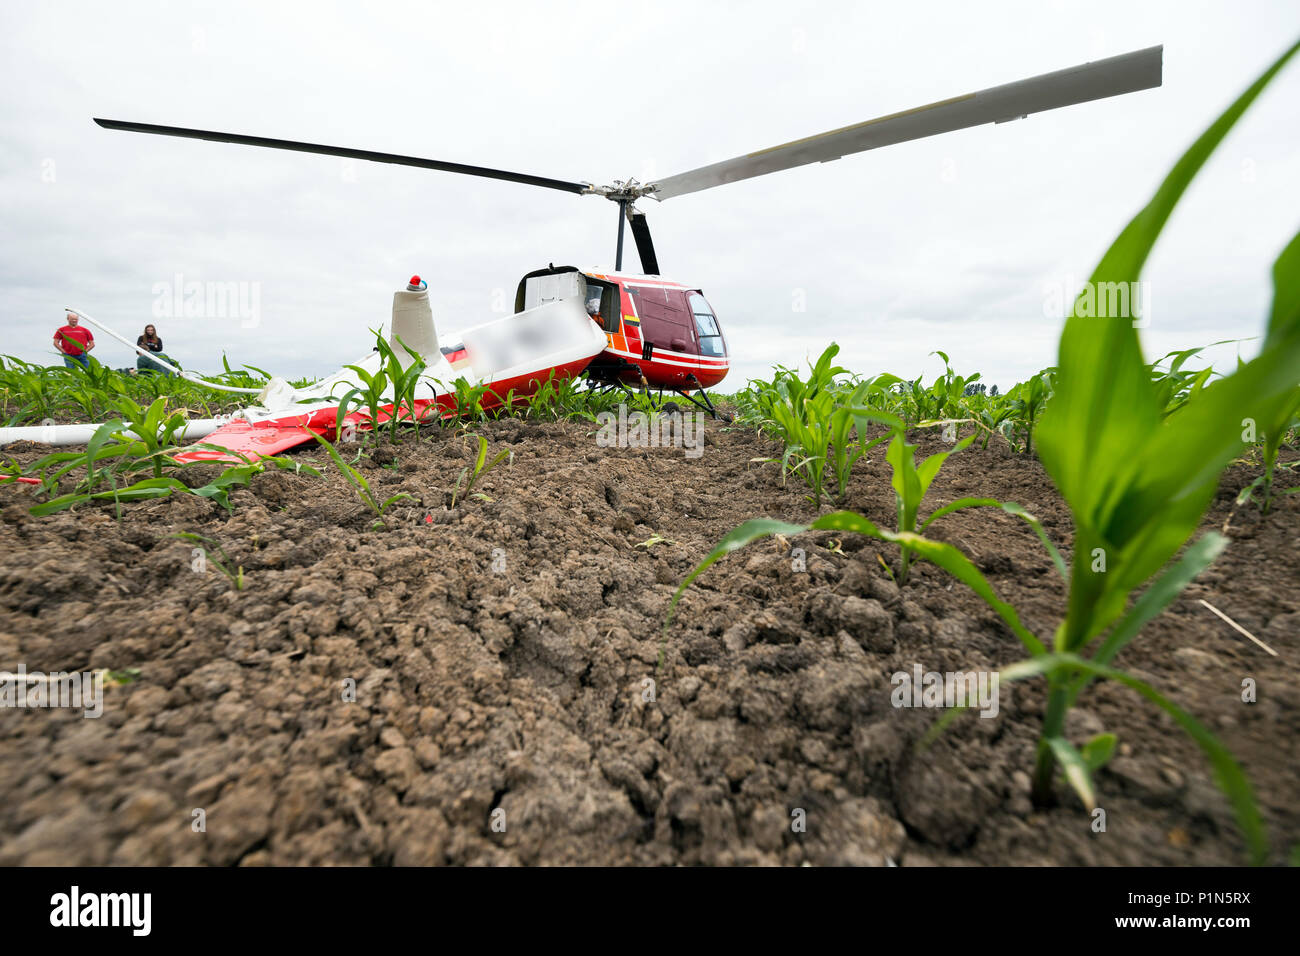 Berne, Germany. 12th Jun, 2018. 12 June 2018, Germany, Berne: An Enstrom F-28F helicopter after an emergency landing in a field of maize near Berne due to engine failure. Both people on board remained uninjured. Photo: Mohssen Assanimoghaddam/dpa Credit: dpa picture alliance/Alamy Live News - Stock Image